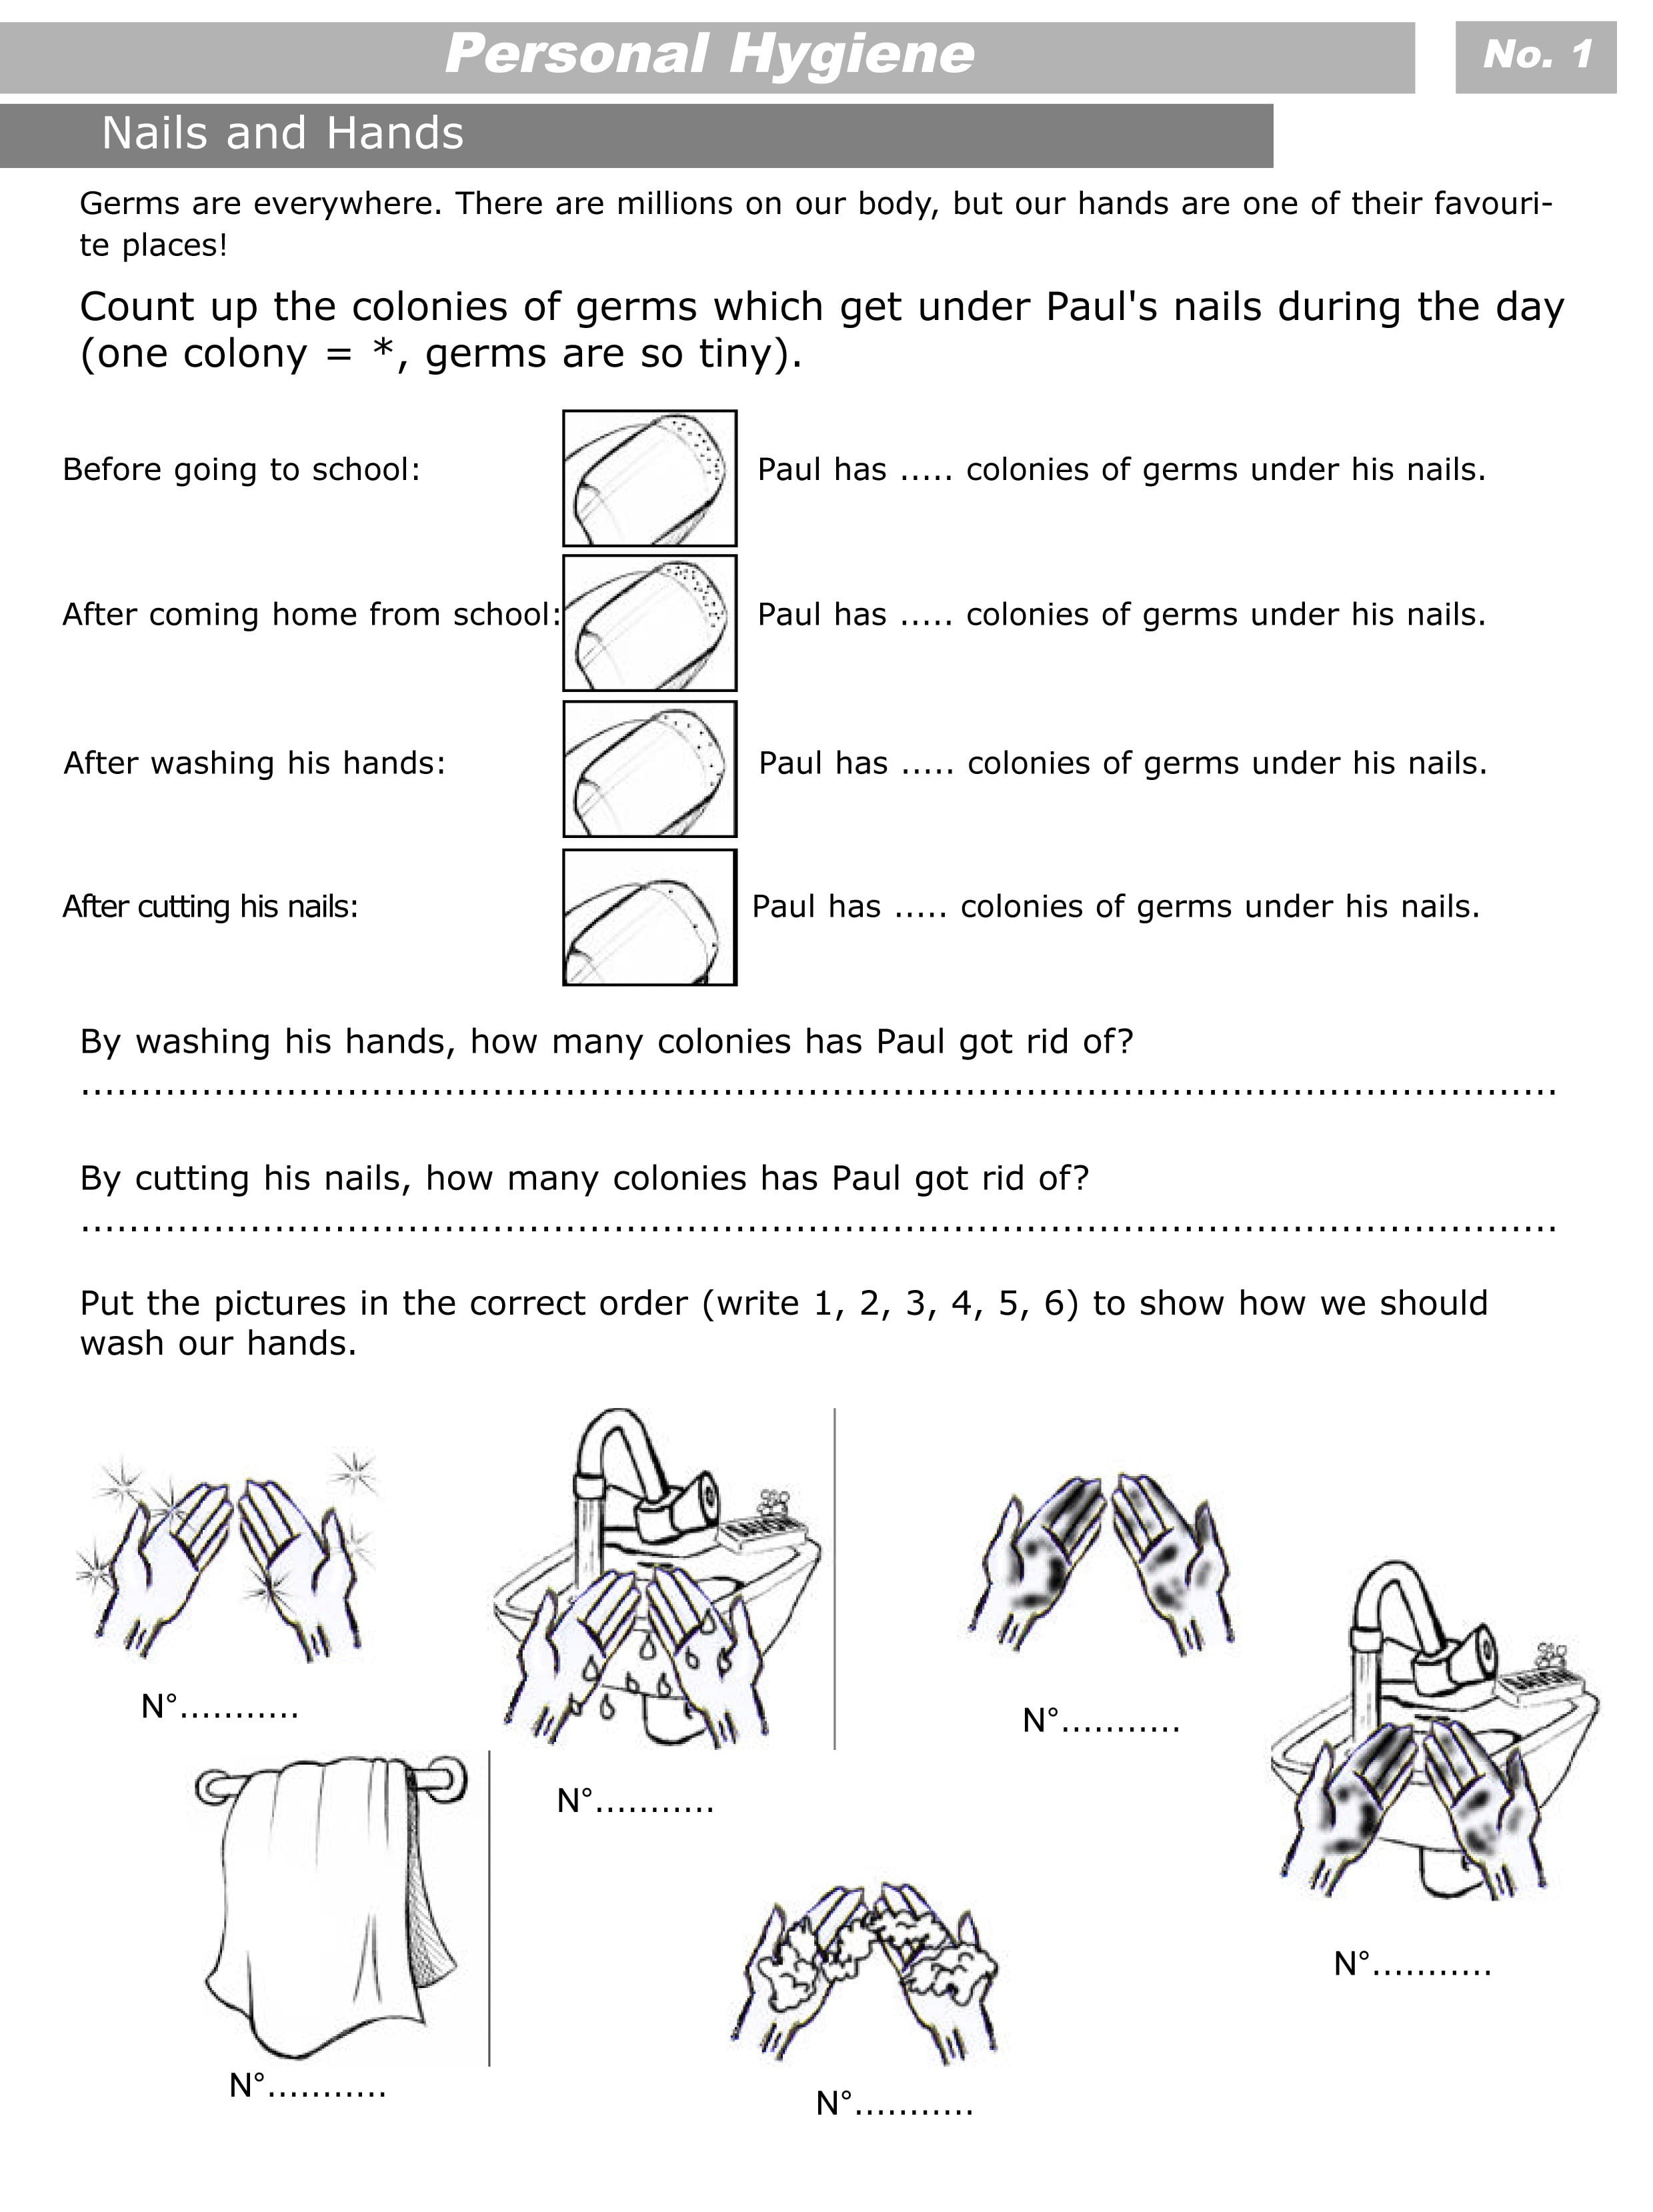 Personal Hygiene Worksheets For Kids Level 2 Personal